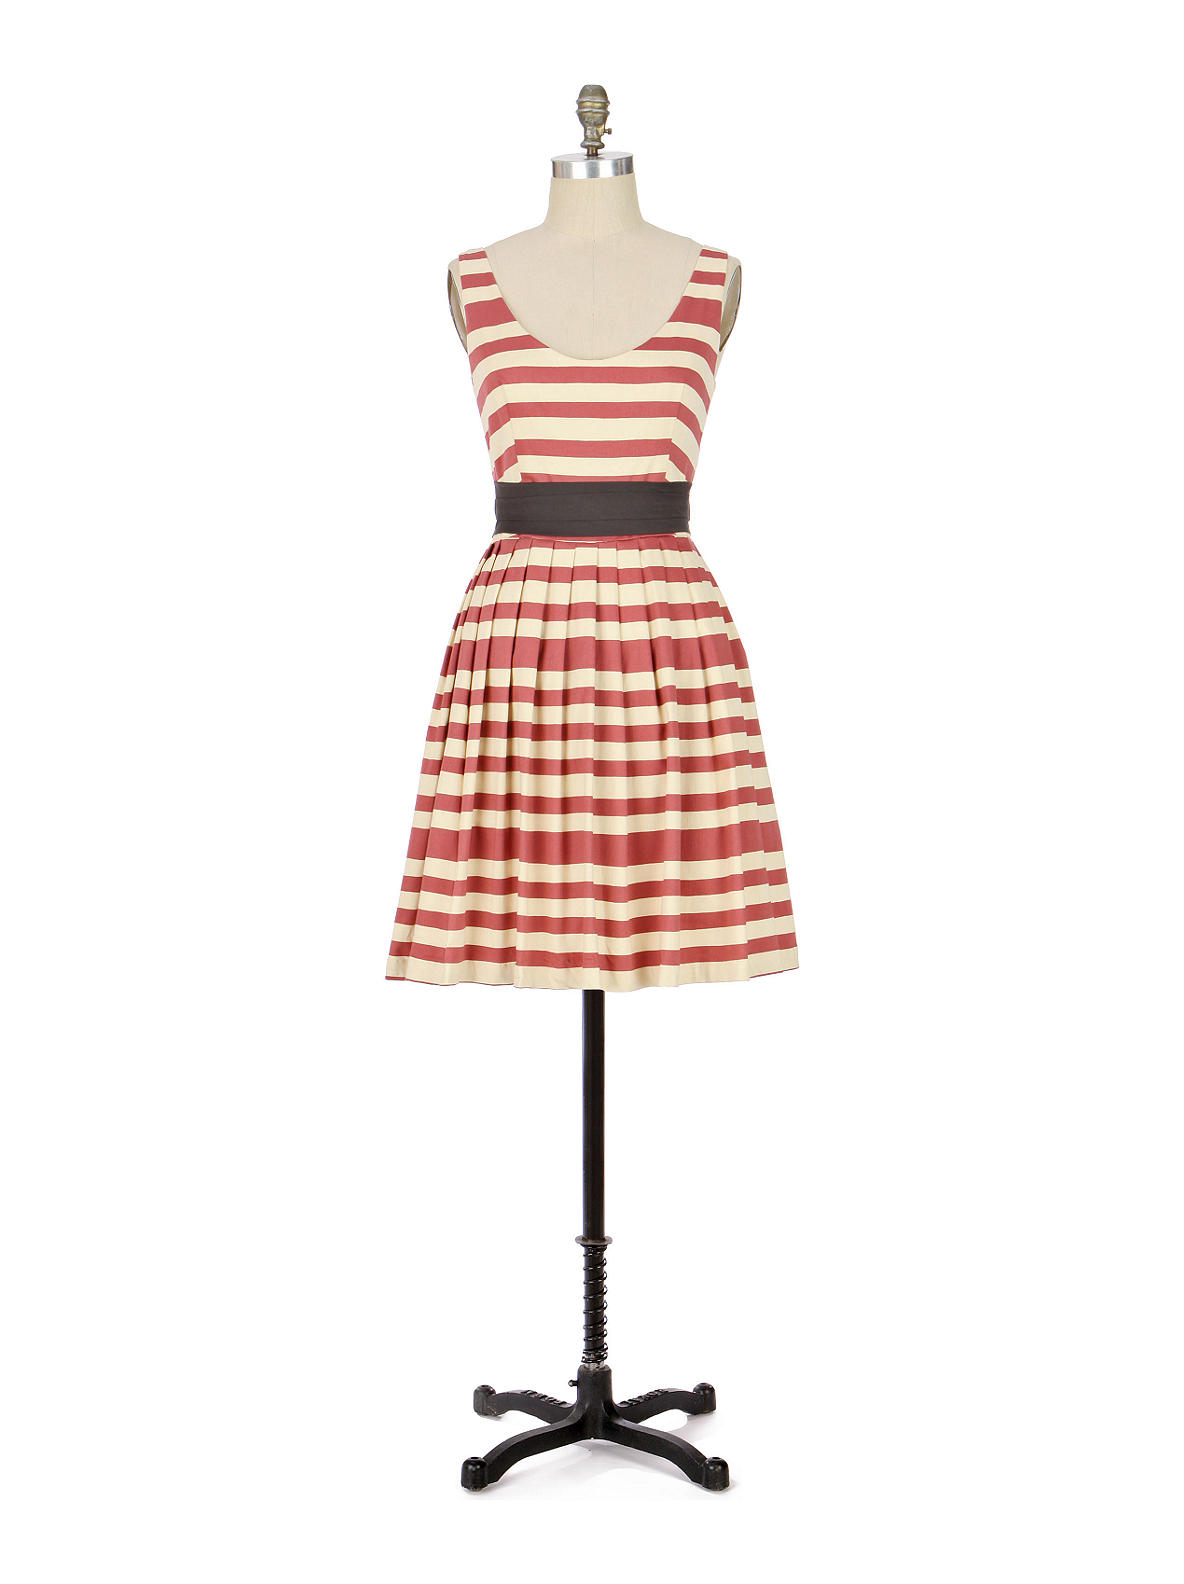 Corey Lynn Calter - Caranday Dress - Anthropologie.com :  caranday dress stripes corey lynn calter white